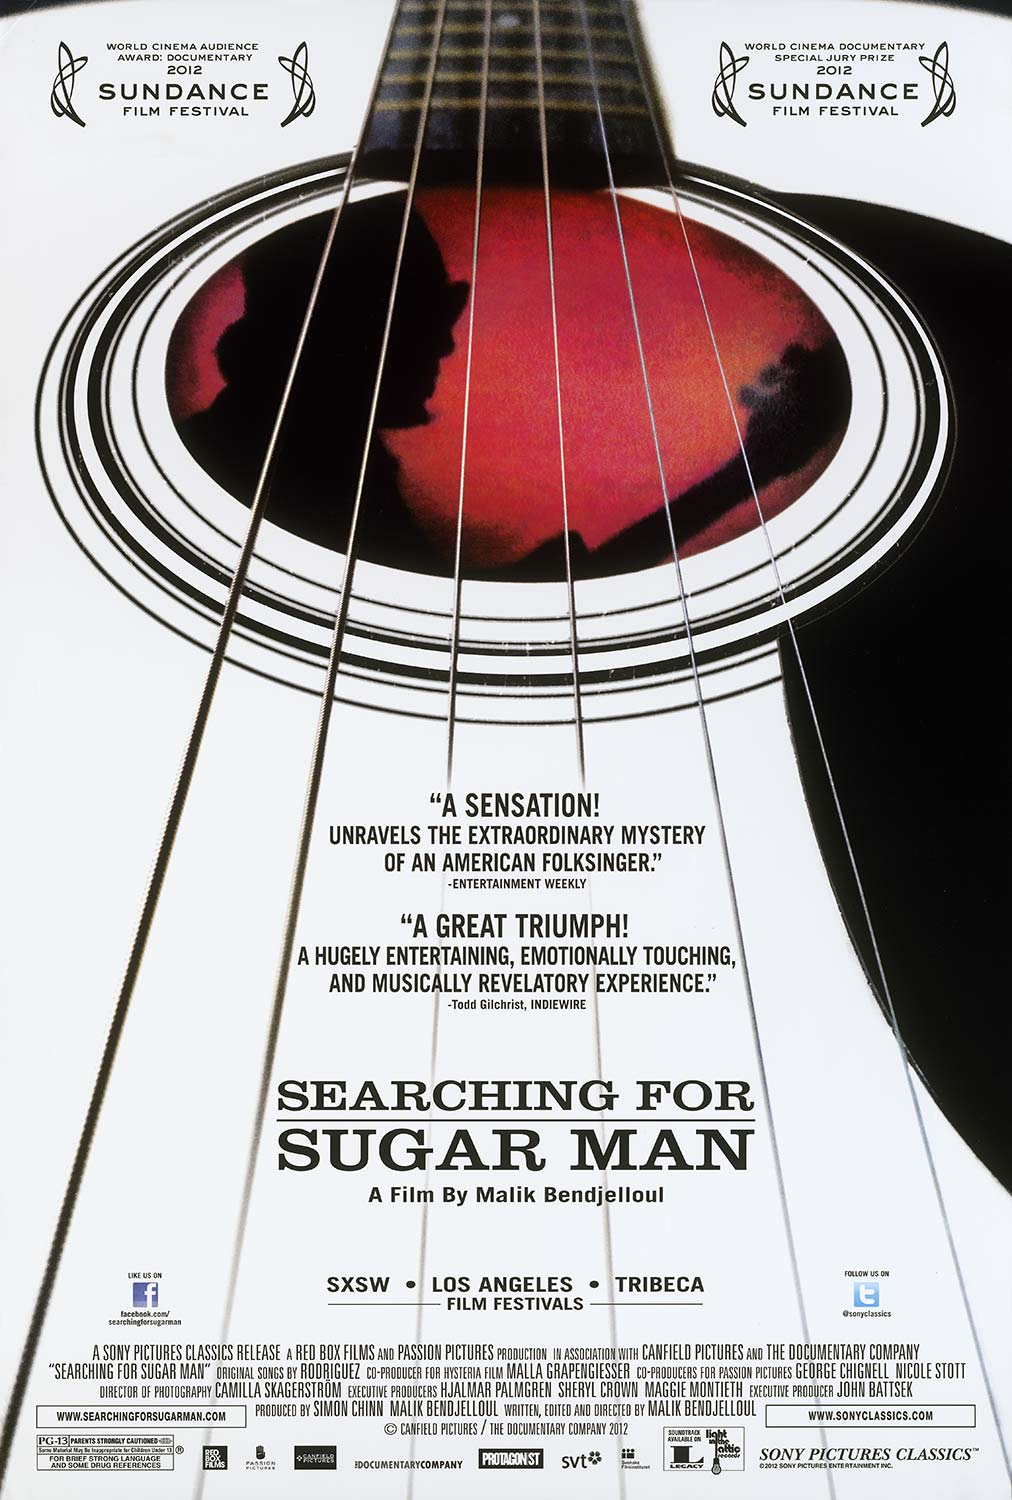 Winner: Searching for Sugar Man